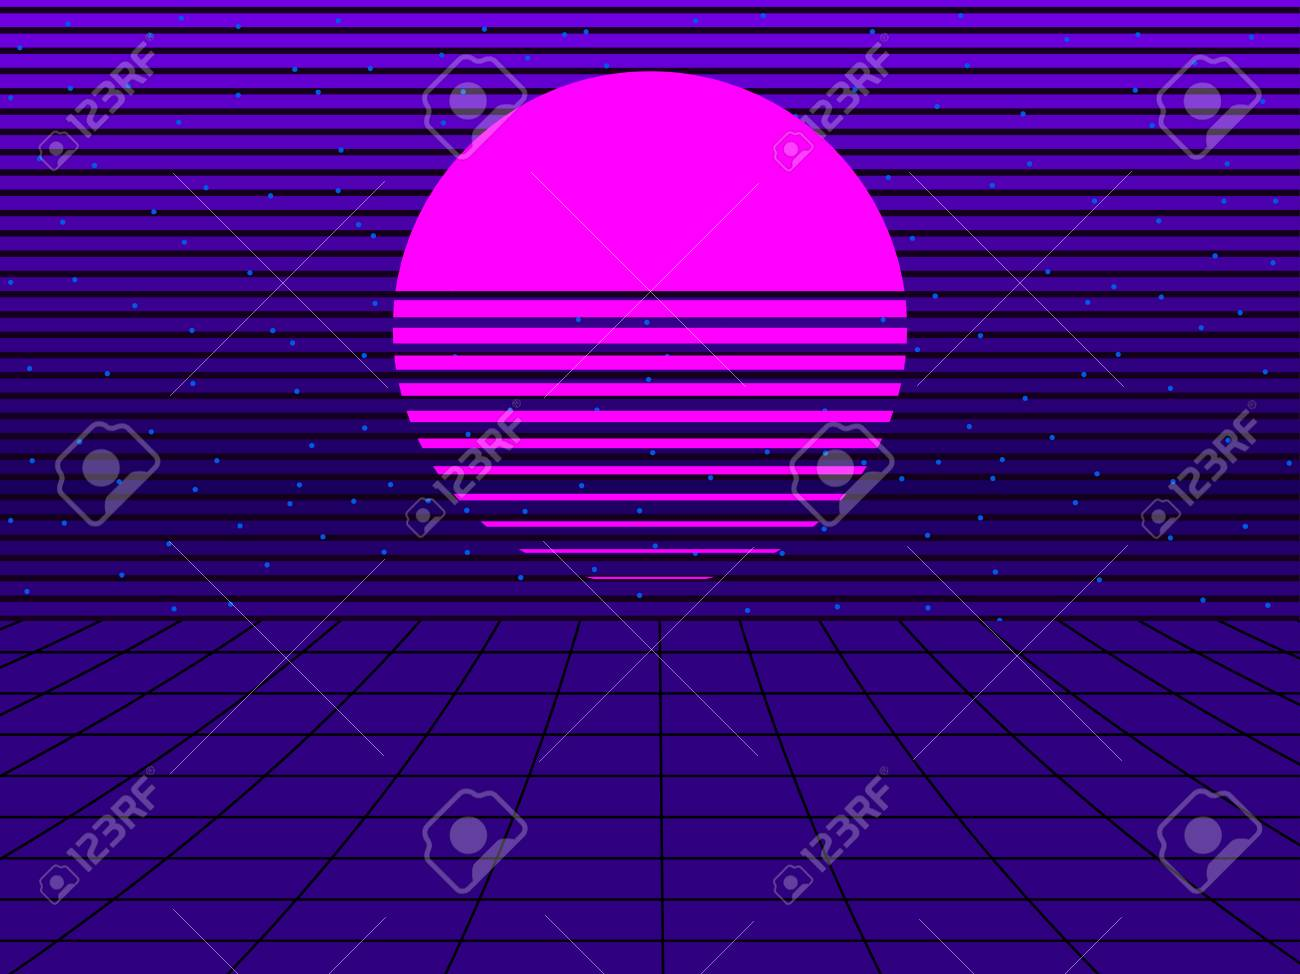 Neon sunset in the style of 80s  Synthwave retro futuristic background